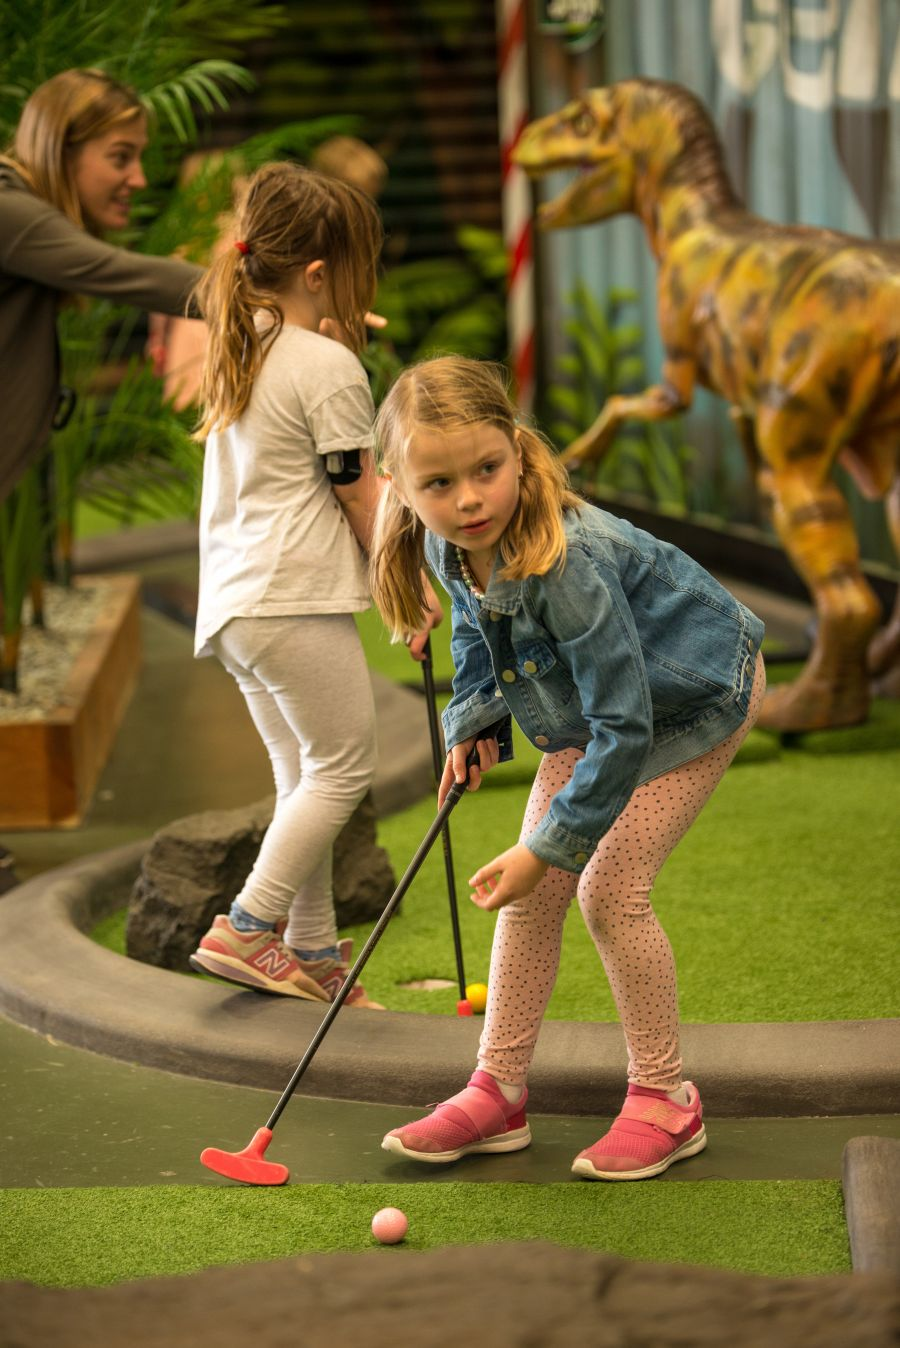 Game Over Auckland | 1 Mini Putt Round